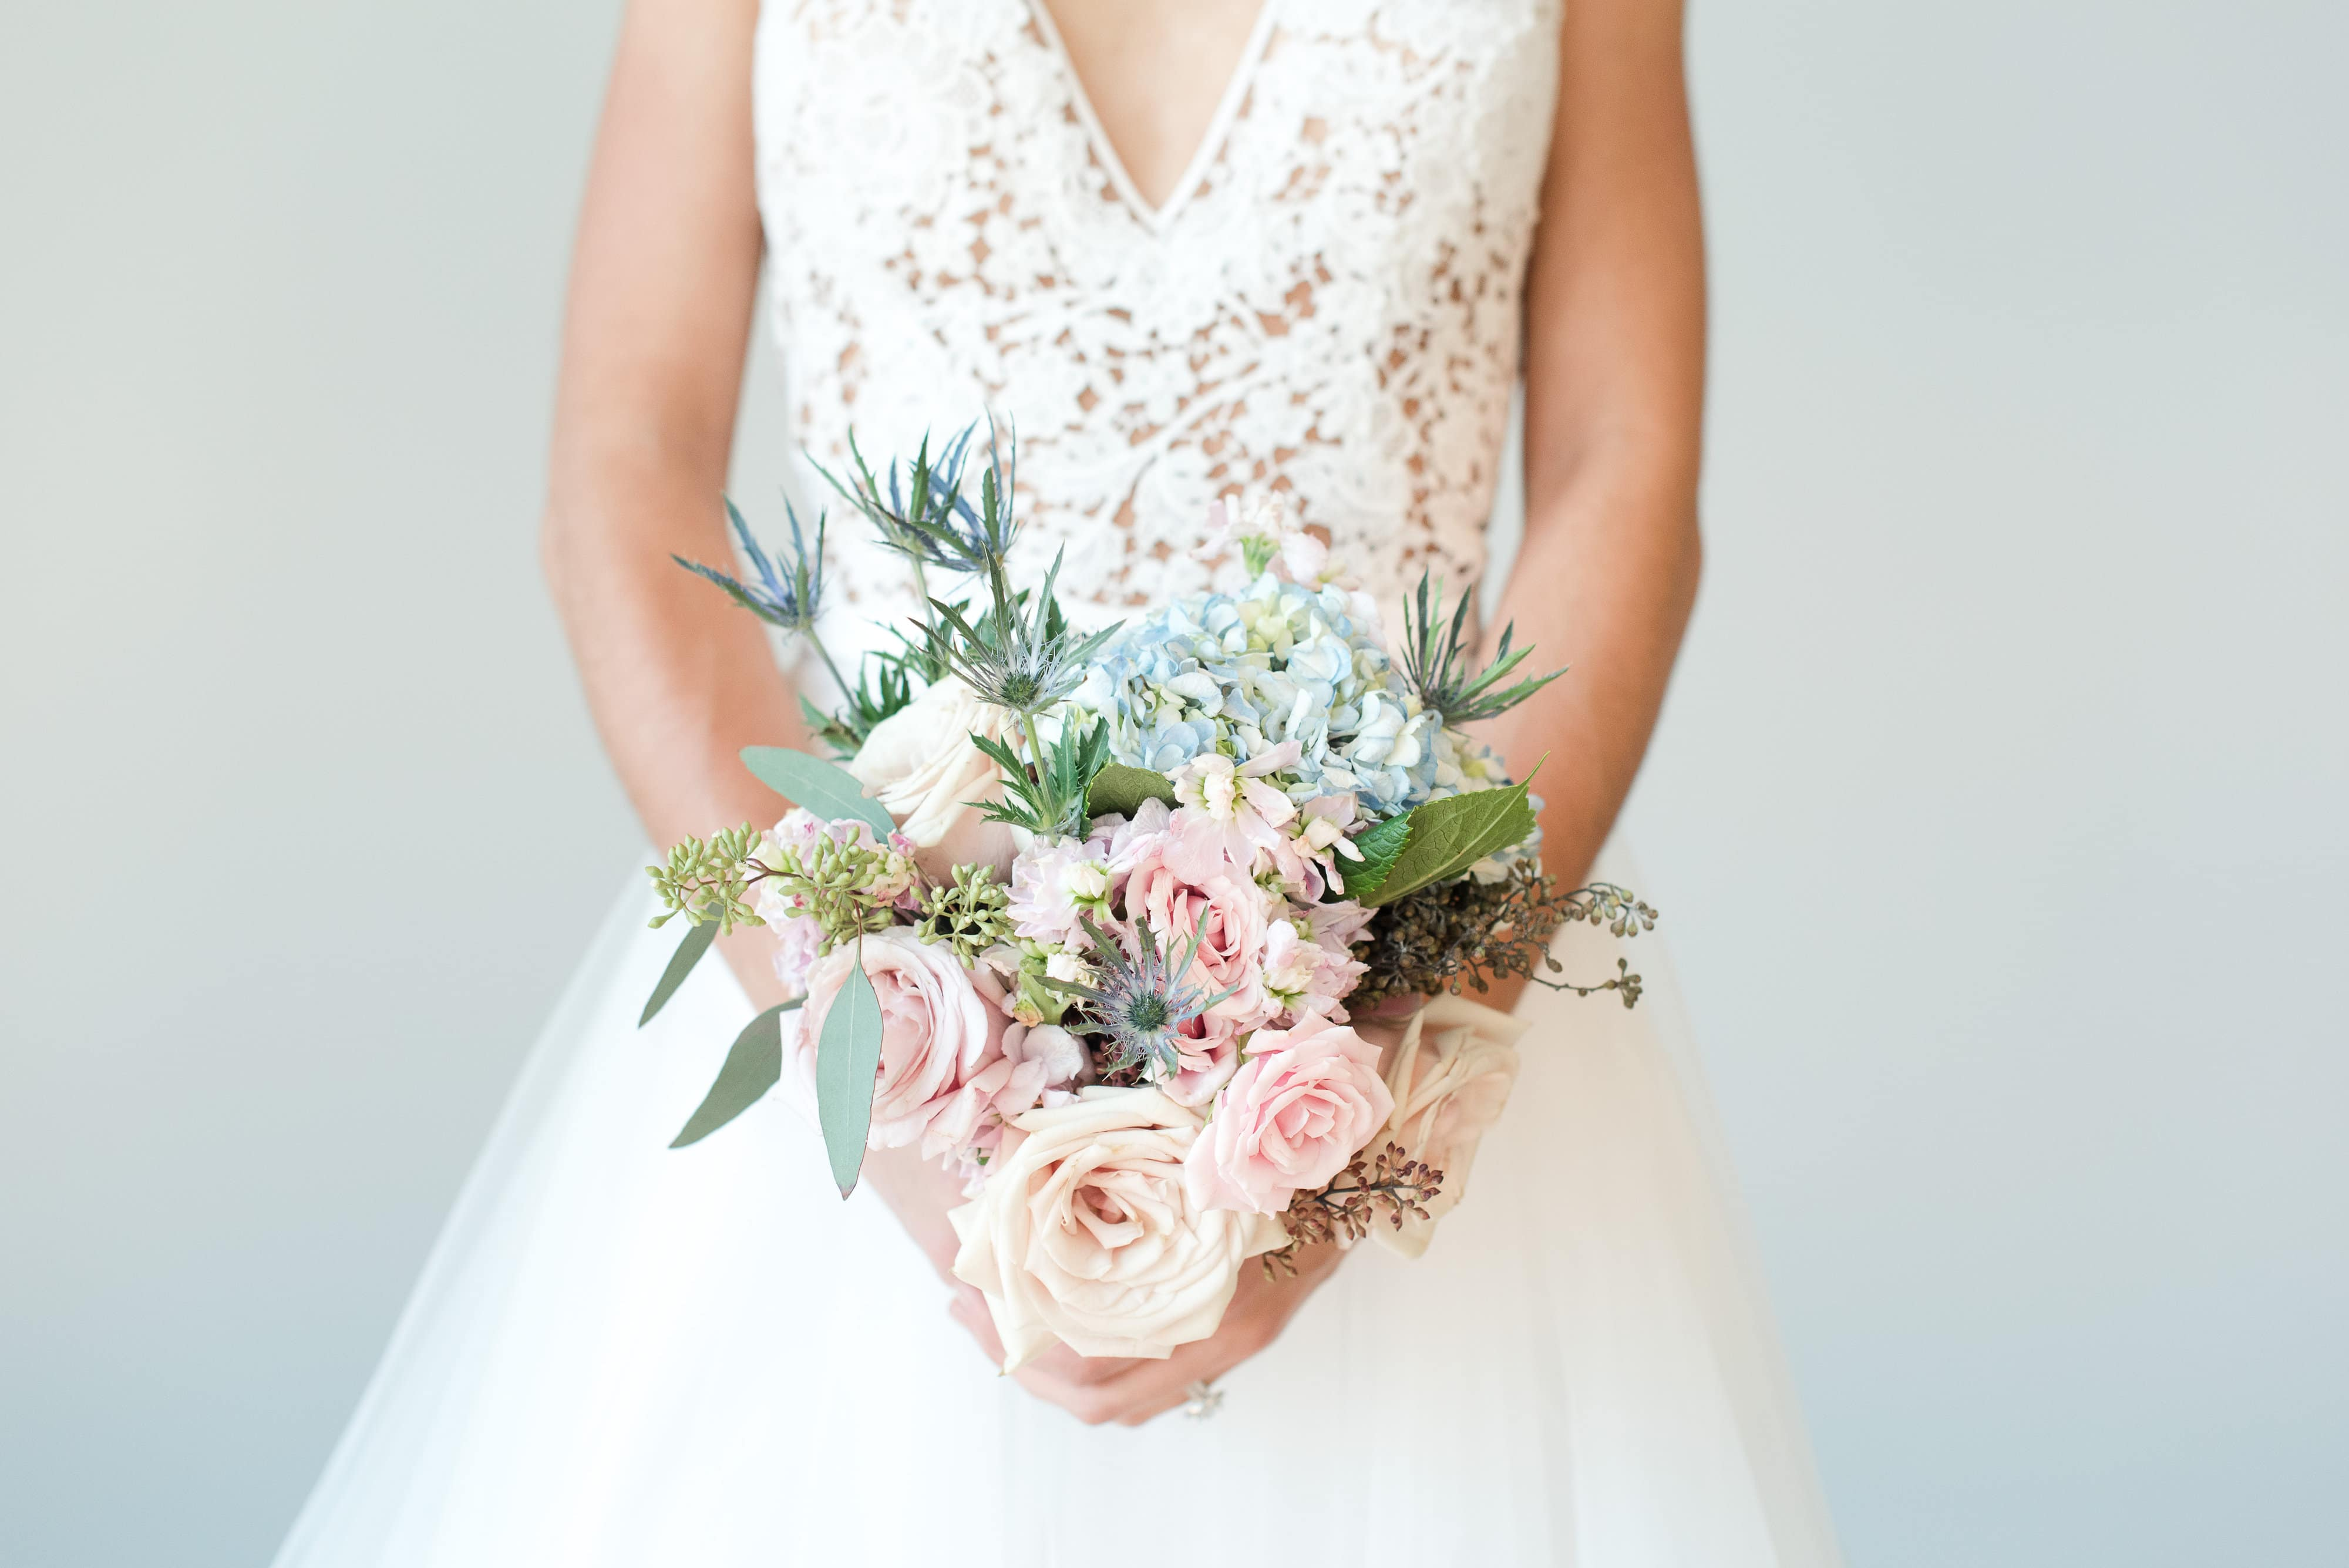 Bride holds bridal bouquet with pink roses and blue hydrangeas created by Magnificent Moments Weddings